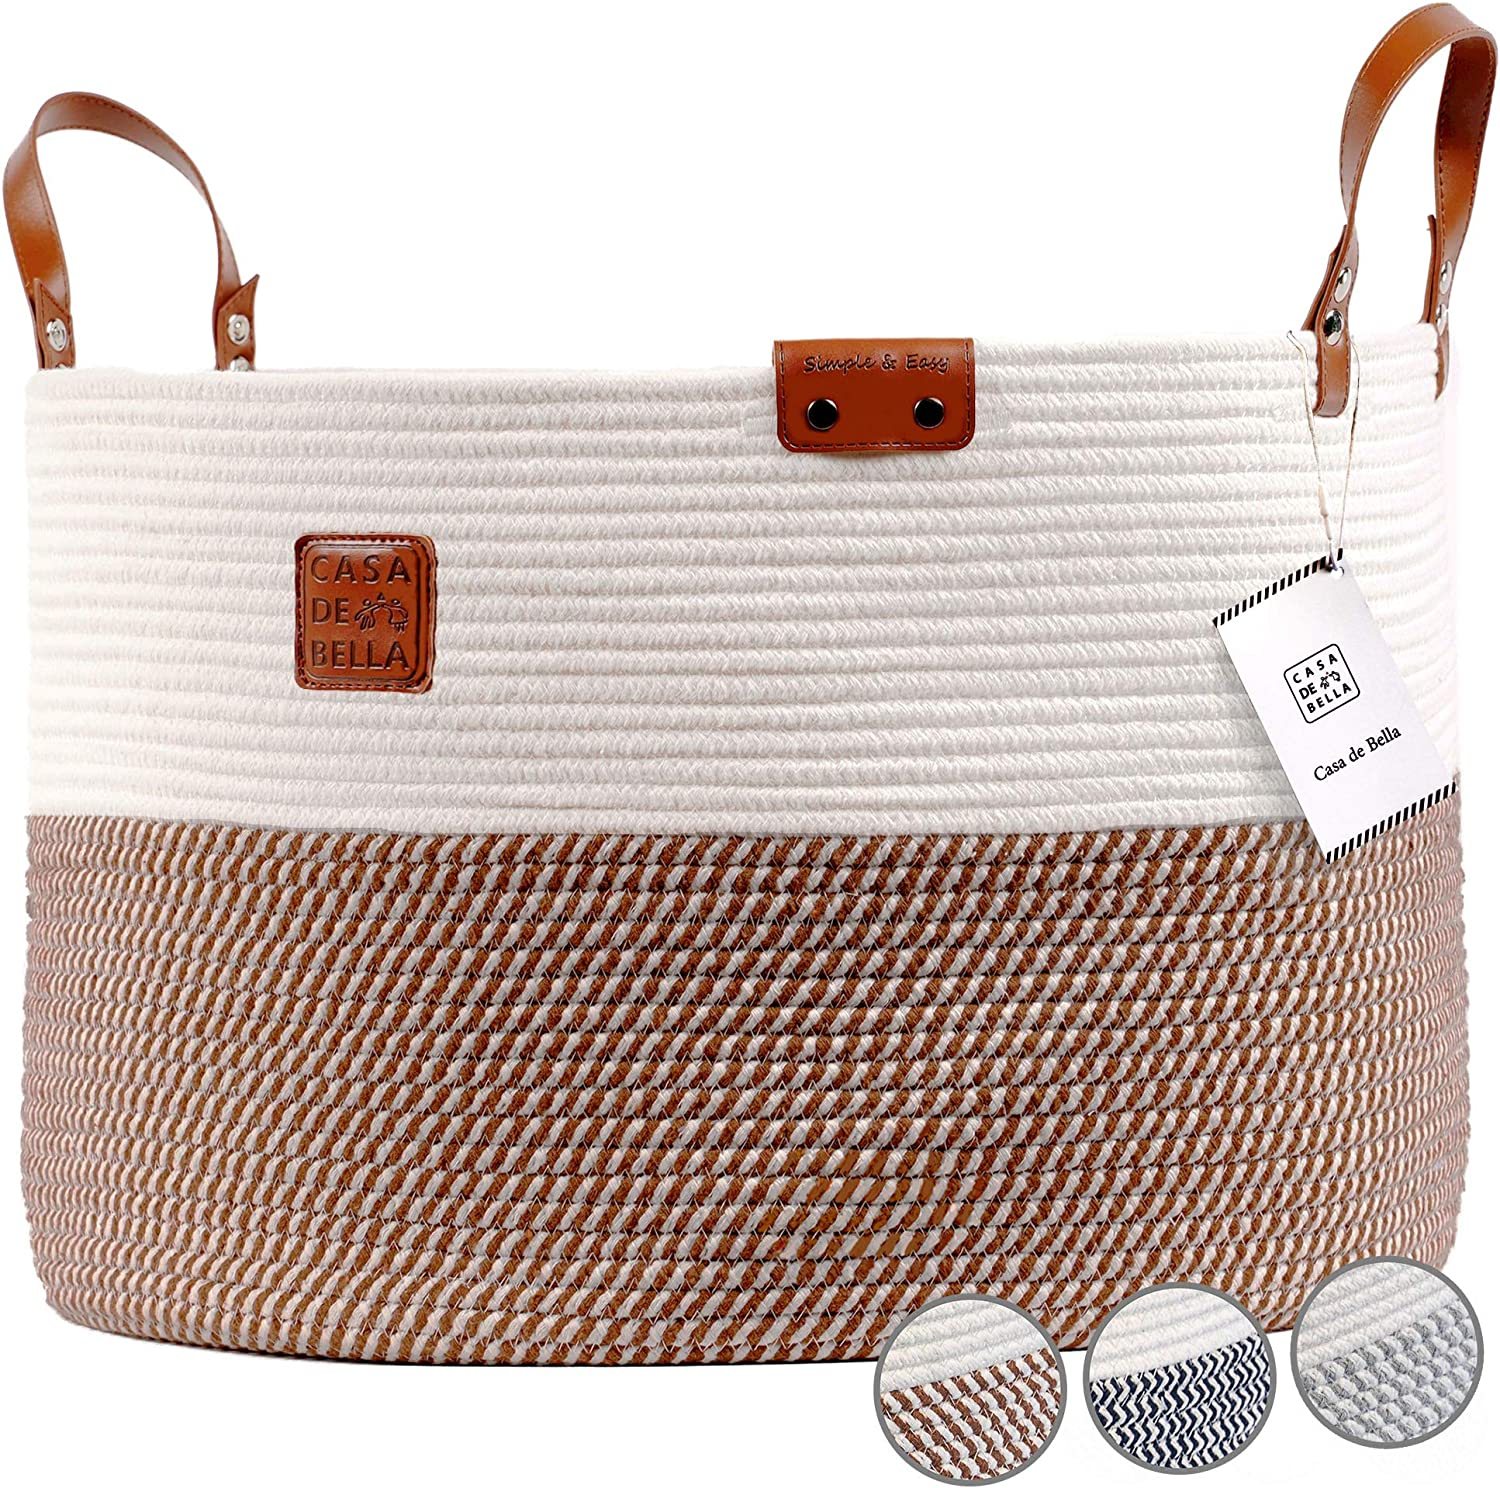 "Romantic Brown XXXLarge Laundry Basket - 21.7x21.7x13.8"" Cotton Rope Basket for Blankets Kids Toys Storage Baskets Handle Comforter Cushions Storage Bins Baby Nursery Organizer or Hamper"